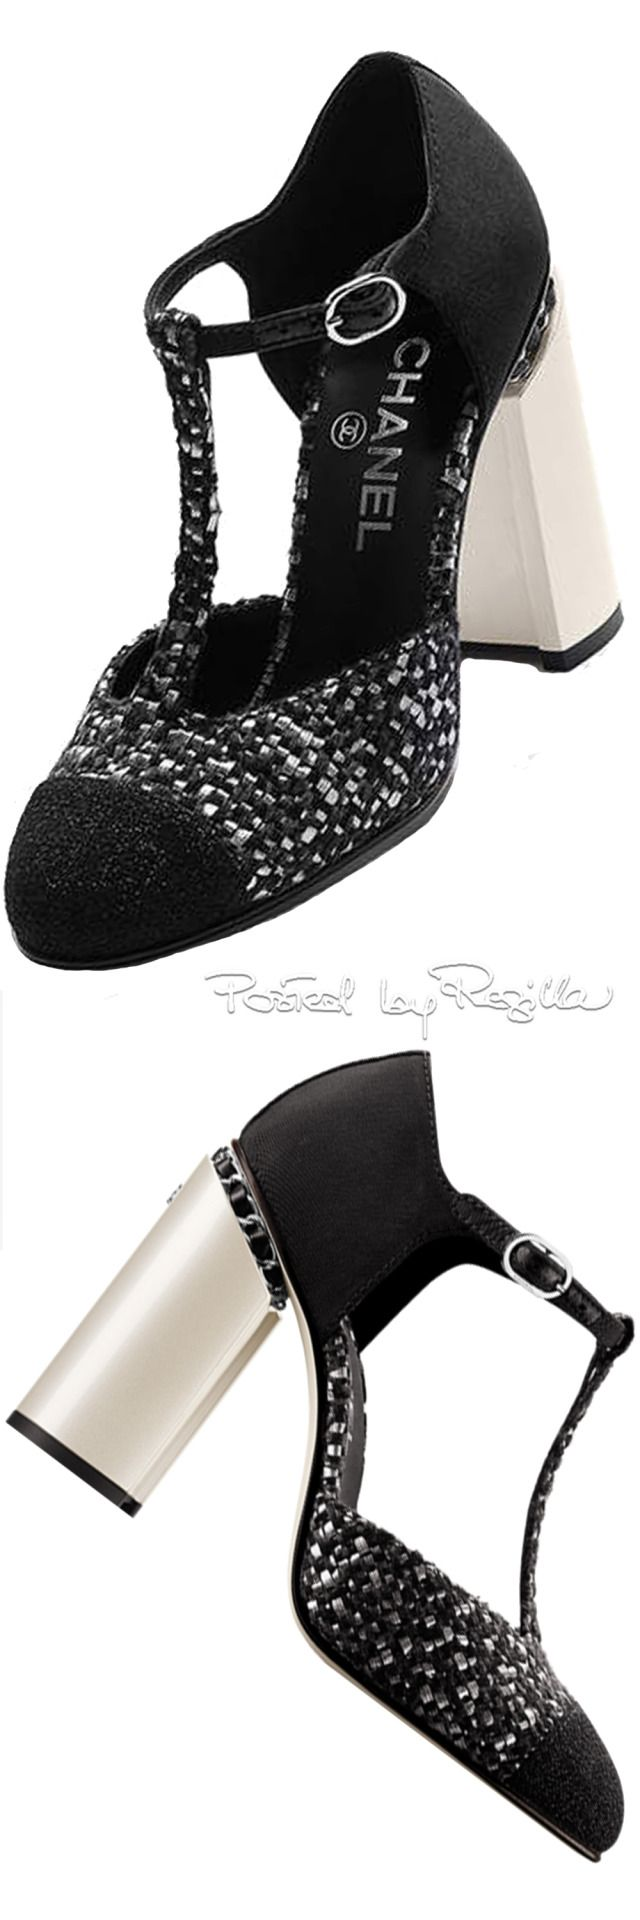 1000+ images about YES MORE SHOES !!!! on Pinterest.